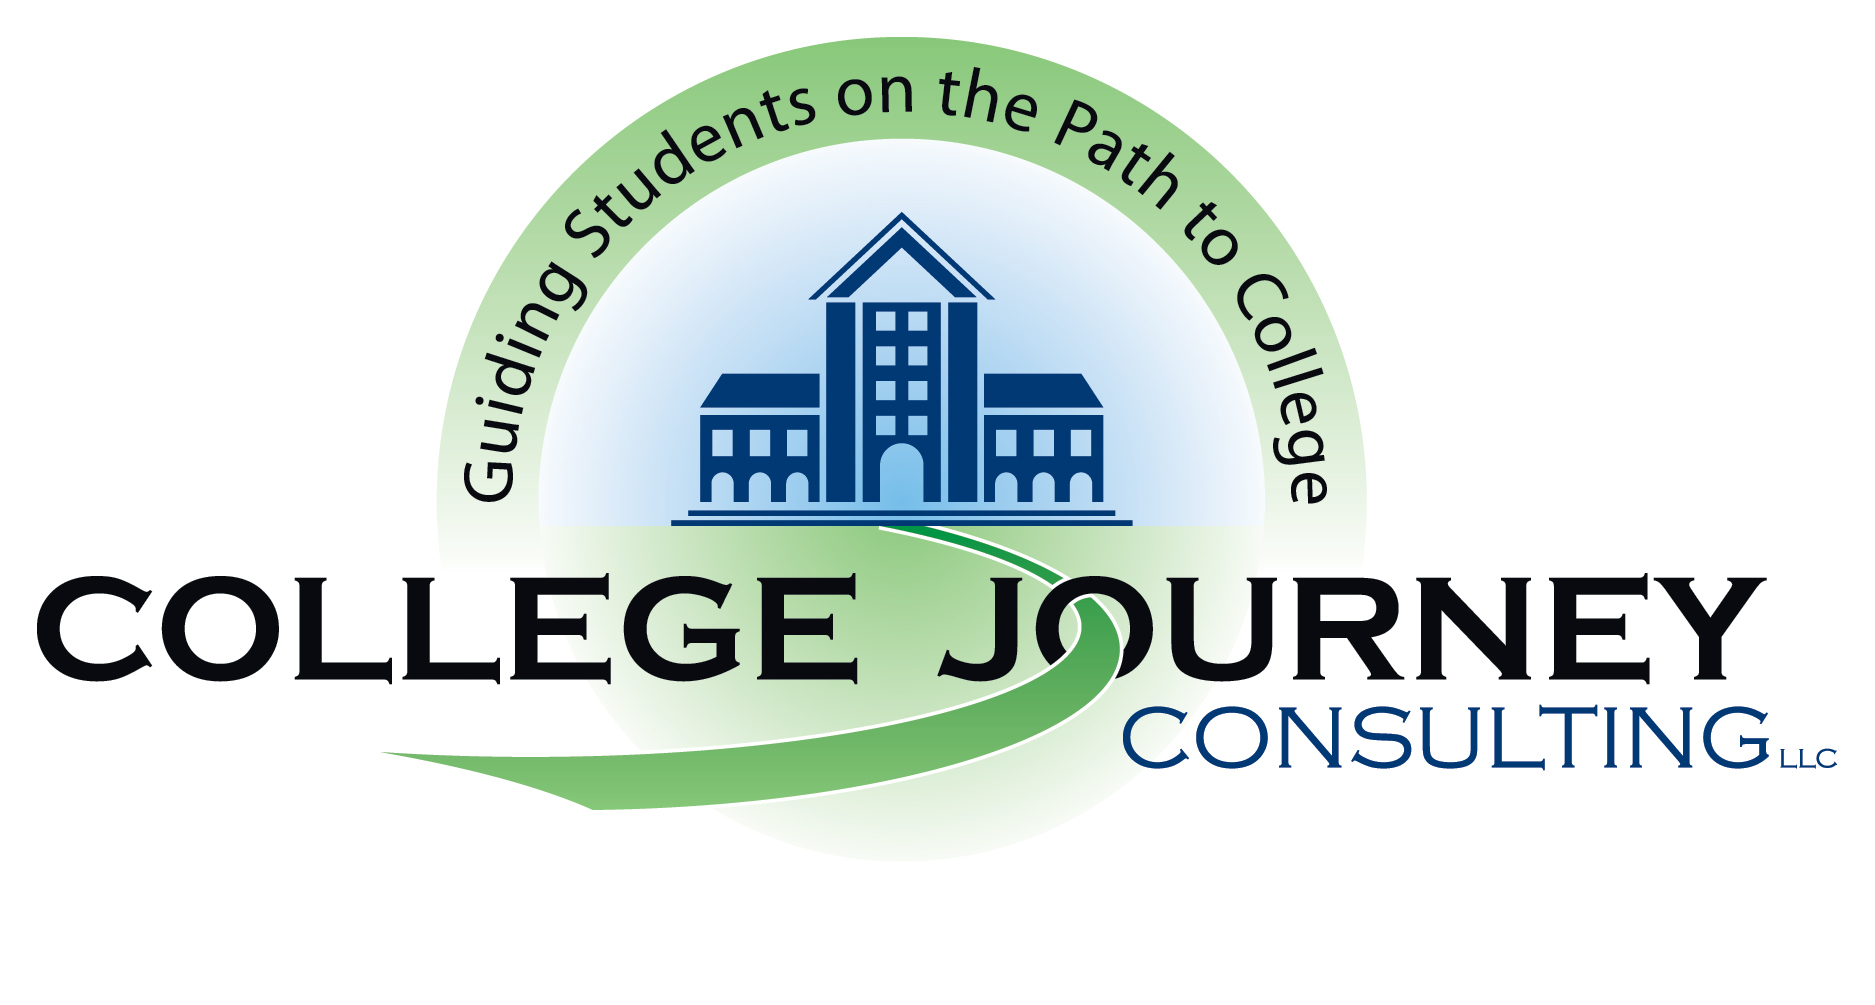 College Journey Consulting LLC